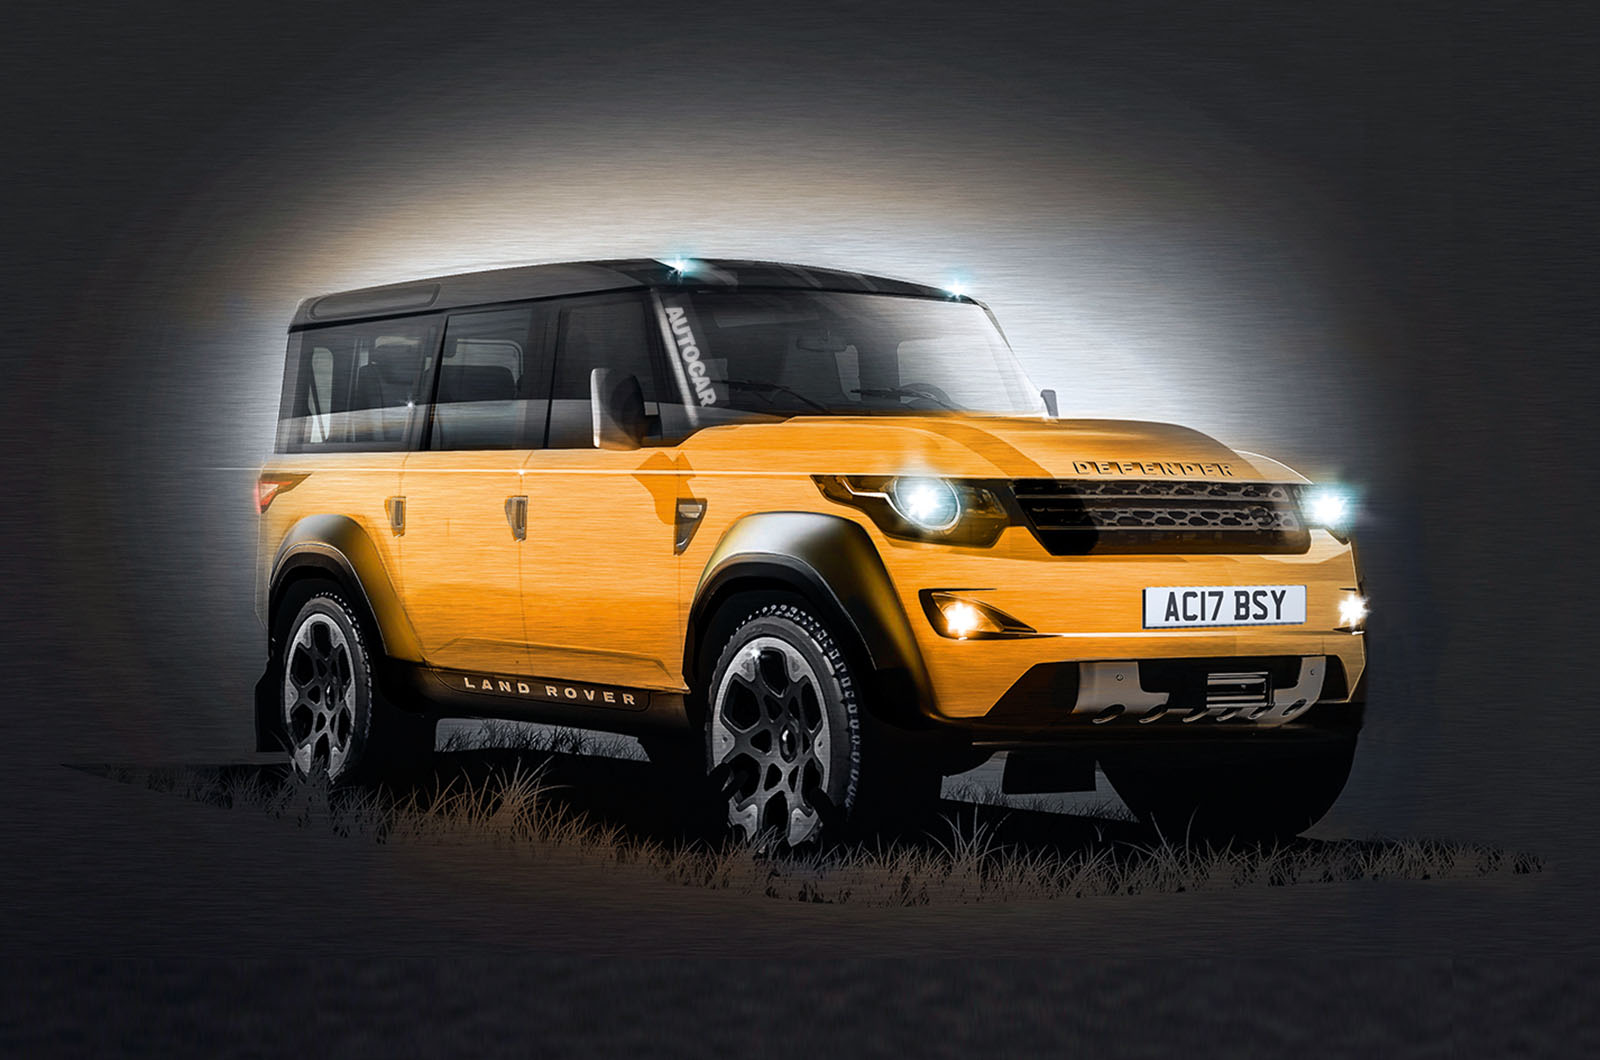 new car model release dates ukNew Land Rover Defender due in 2019  Autocar